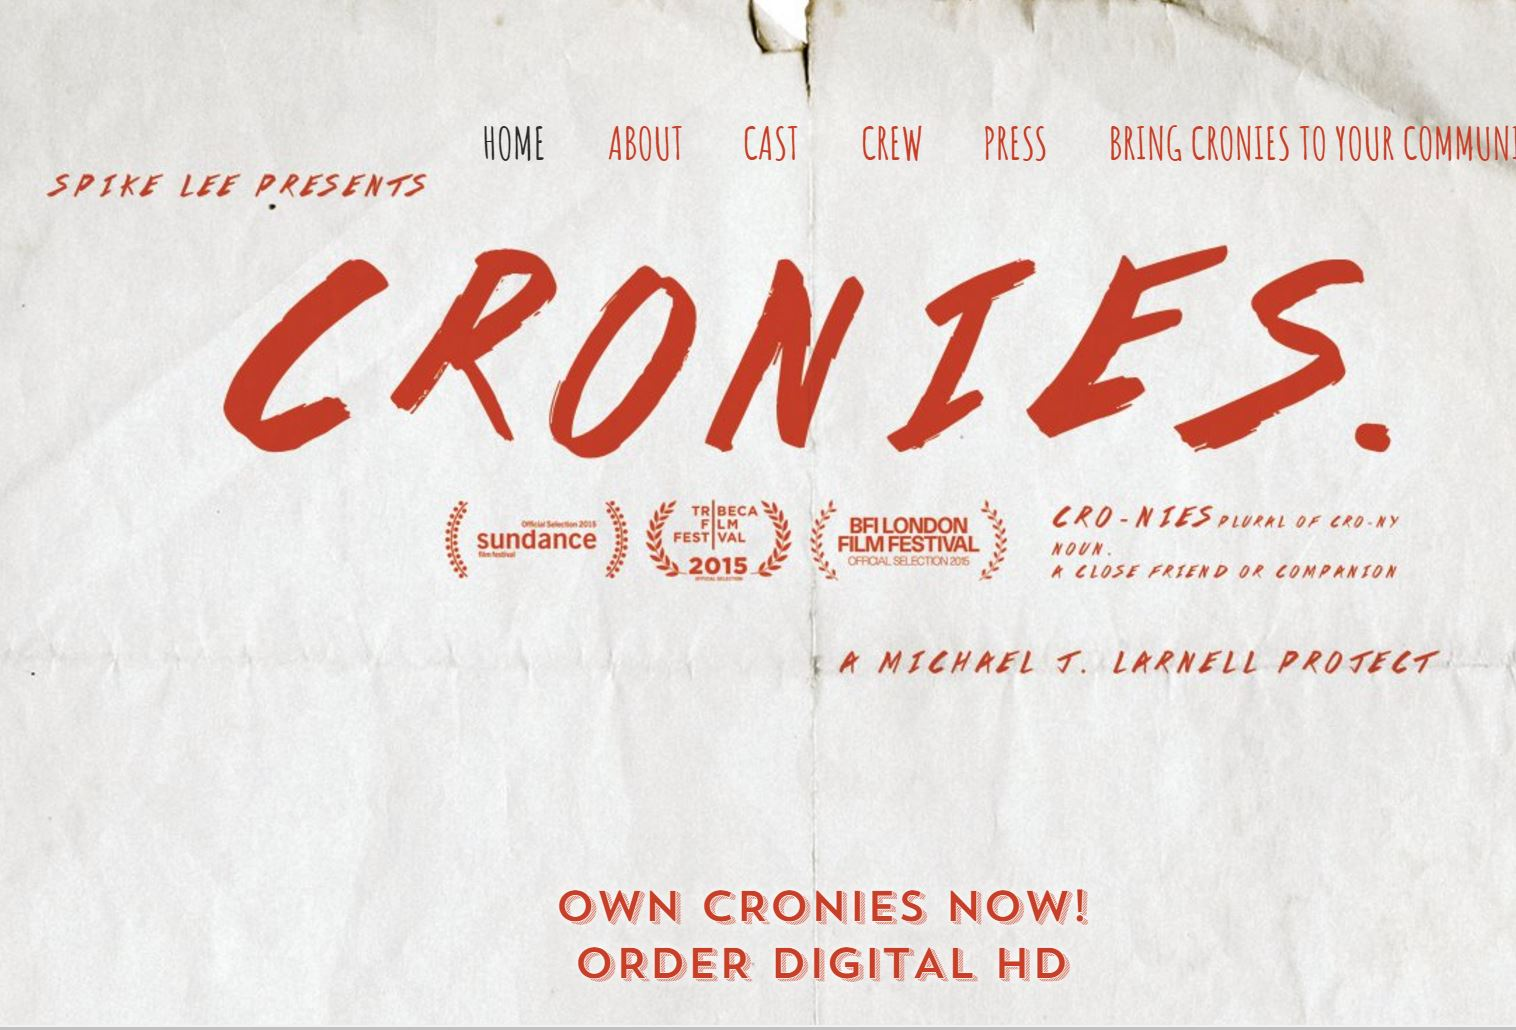 Spike Lee Presents Cronies